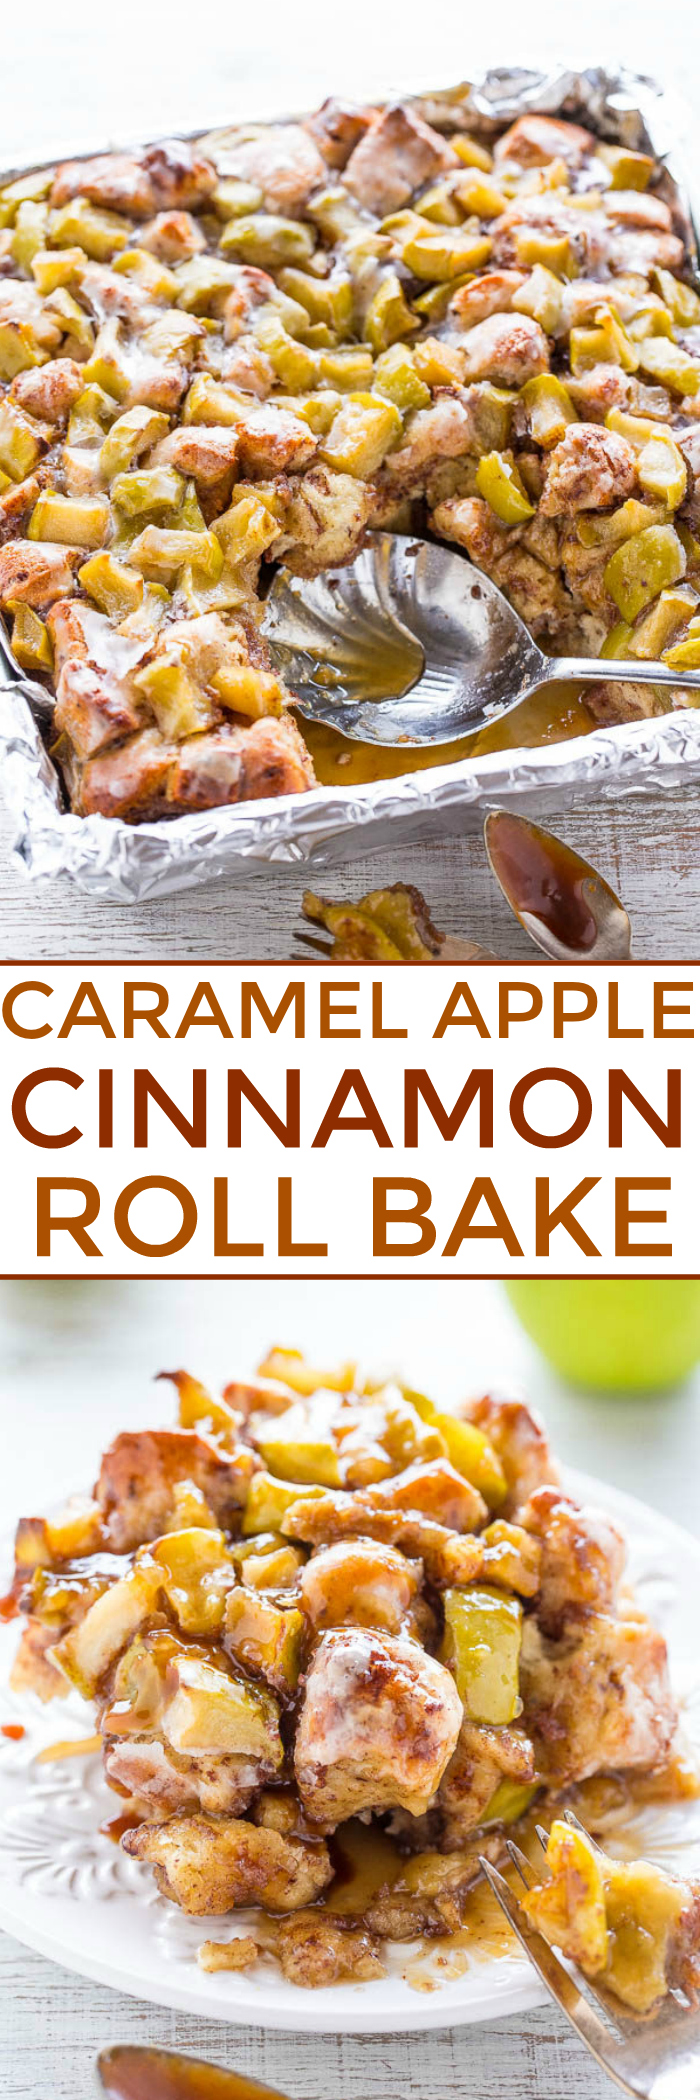 Caramel Apple Cinnamon Roll Bake - The soft and gooey factor of a CINNABON with apples and so much CARAMEL SAUCE!! Easy, ready in 30 minutes, and uses storebought cinnamon roll dough to save time! One of the BEST desserts ever!!